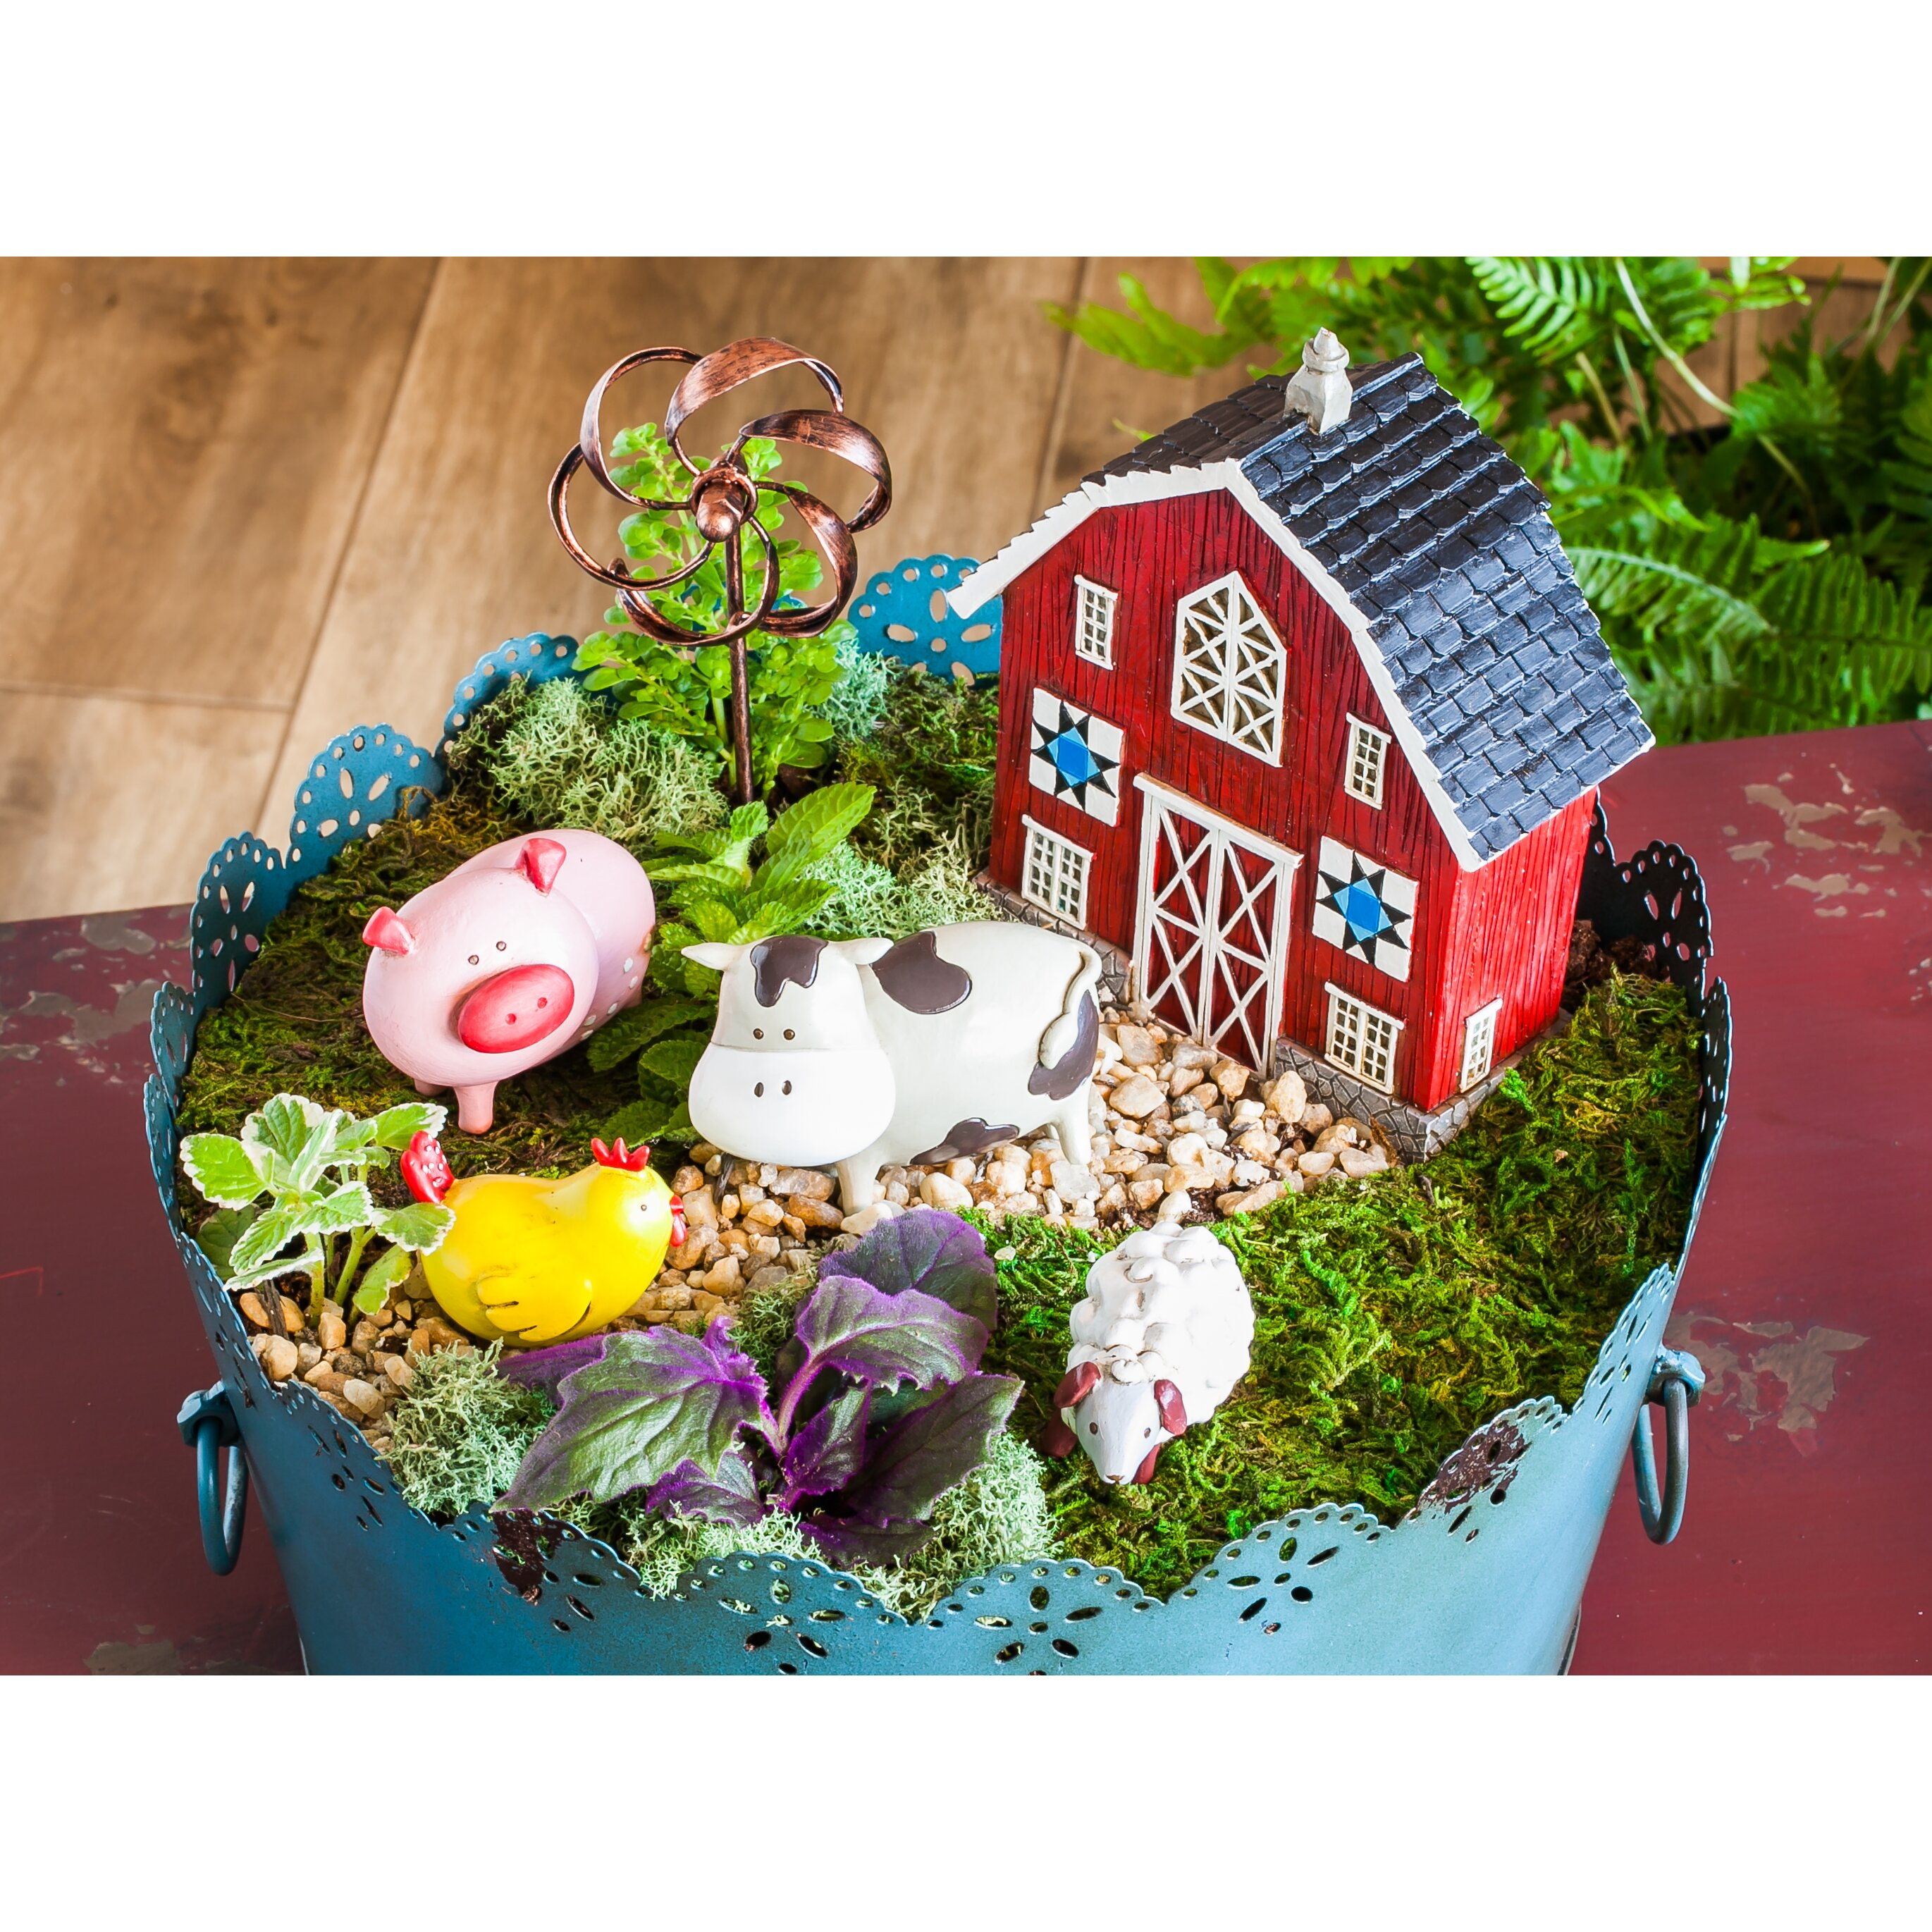 evergreen enterprises inc 2 piece farm animals mini garden set reviews wayfair. Black Bedroom Furniture Sets. Home Design Ideas